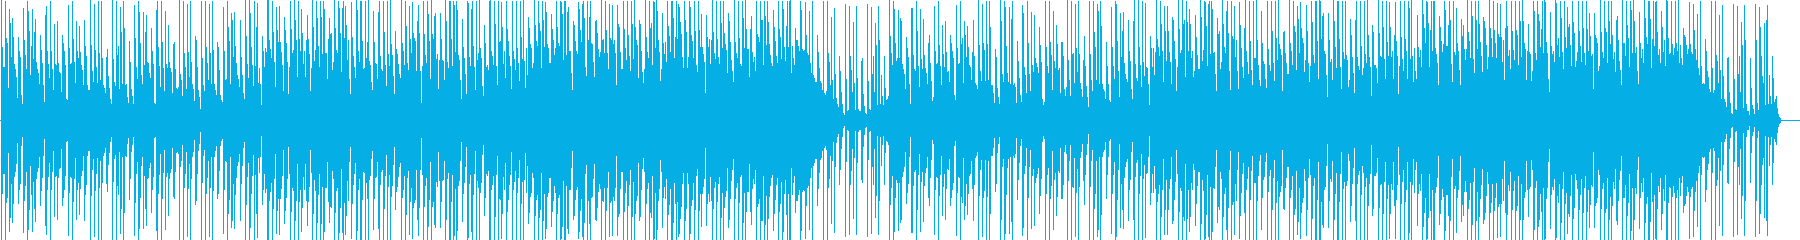 Cheerful 80's blues! Guitar and piano's reproduced waveform